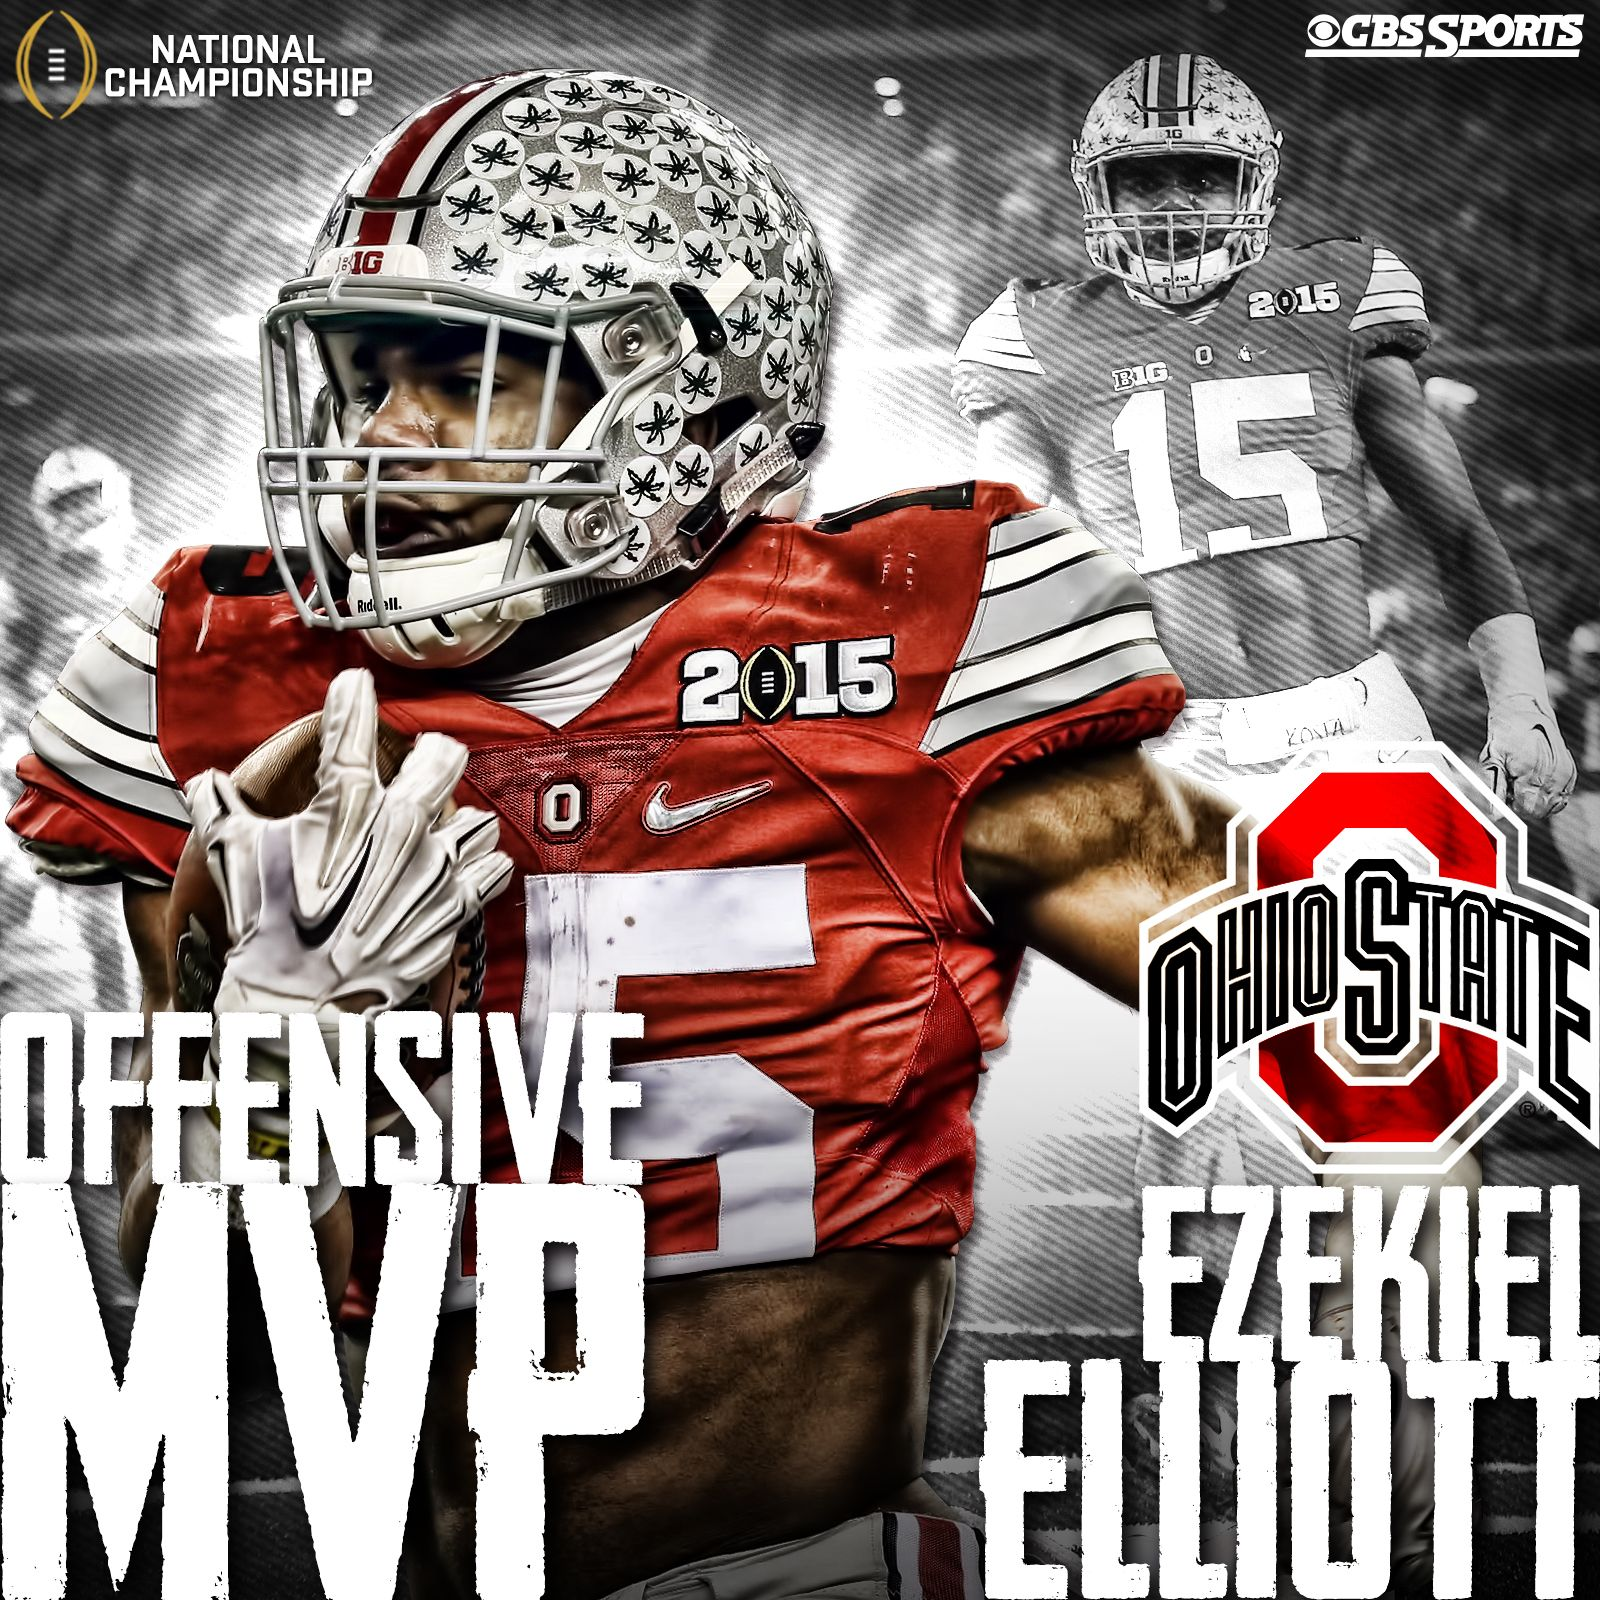 Ezekiel elliott ohio state beat oregon to win national - Most Rushing Yards In Championship Game History 4 Tds And 1 National Championship Ezekiel Elliott Had A Day For The Ohio State Buckeyes